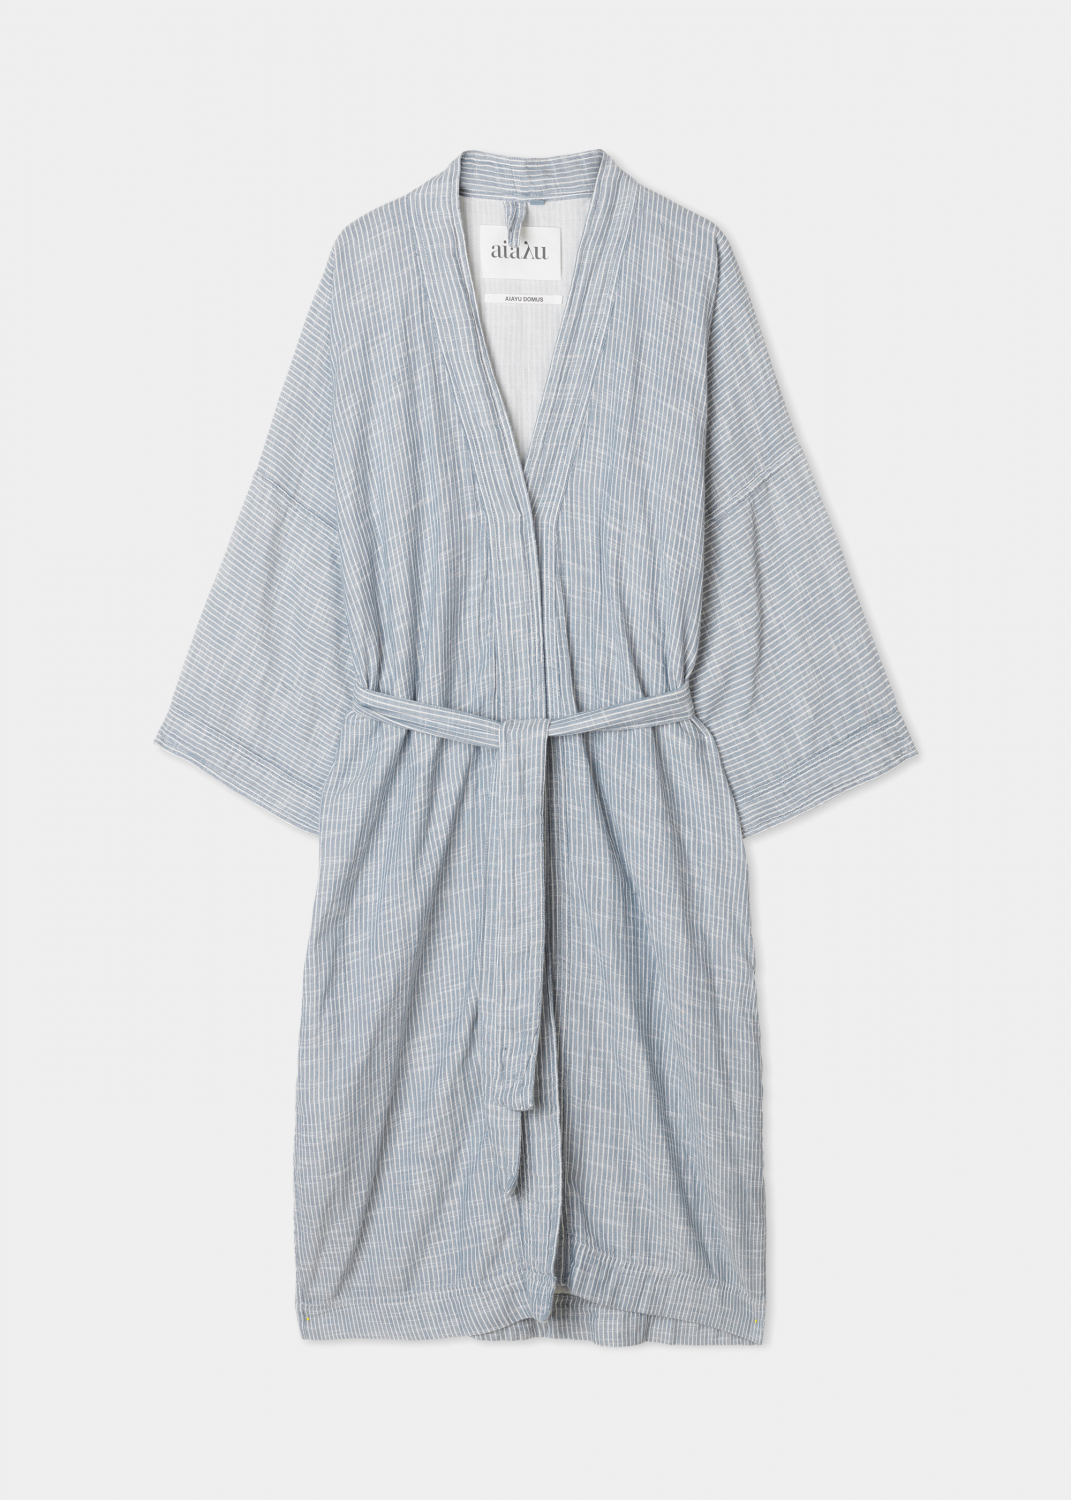 Bathrobes - Bathrobe Striped